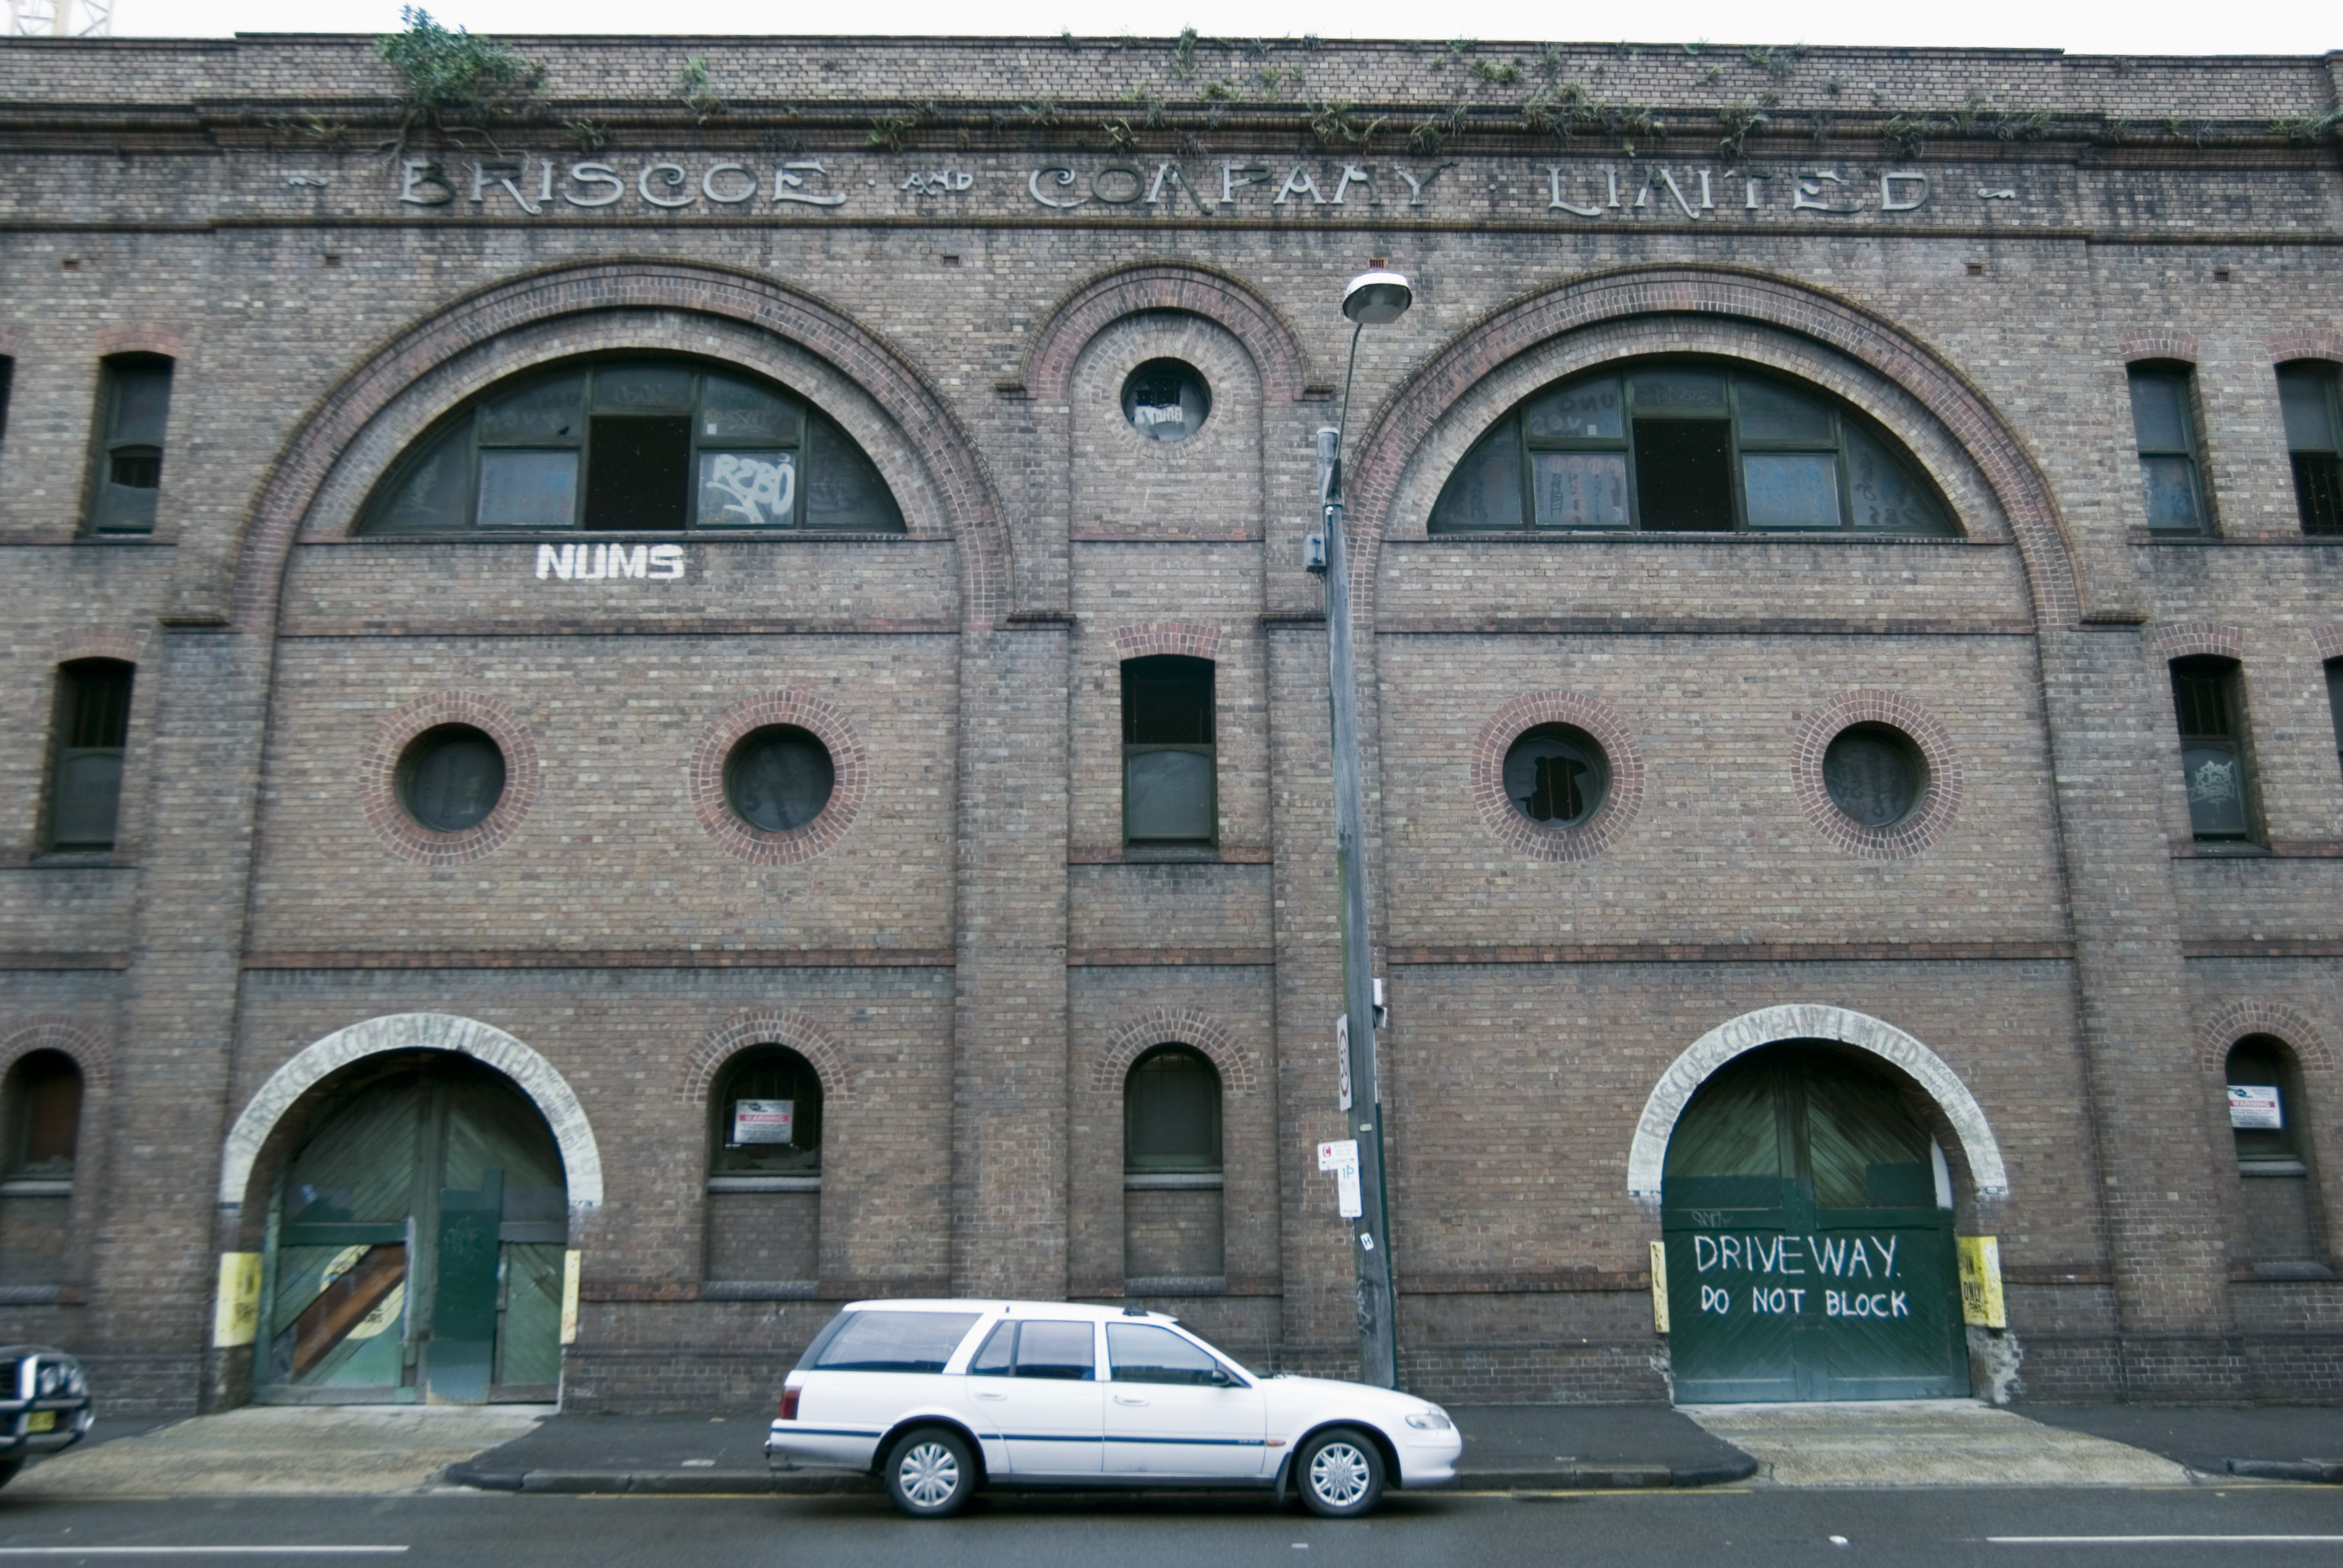 an old brick warehouse facade